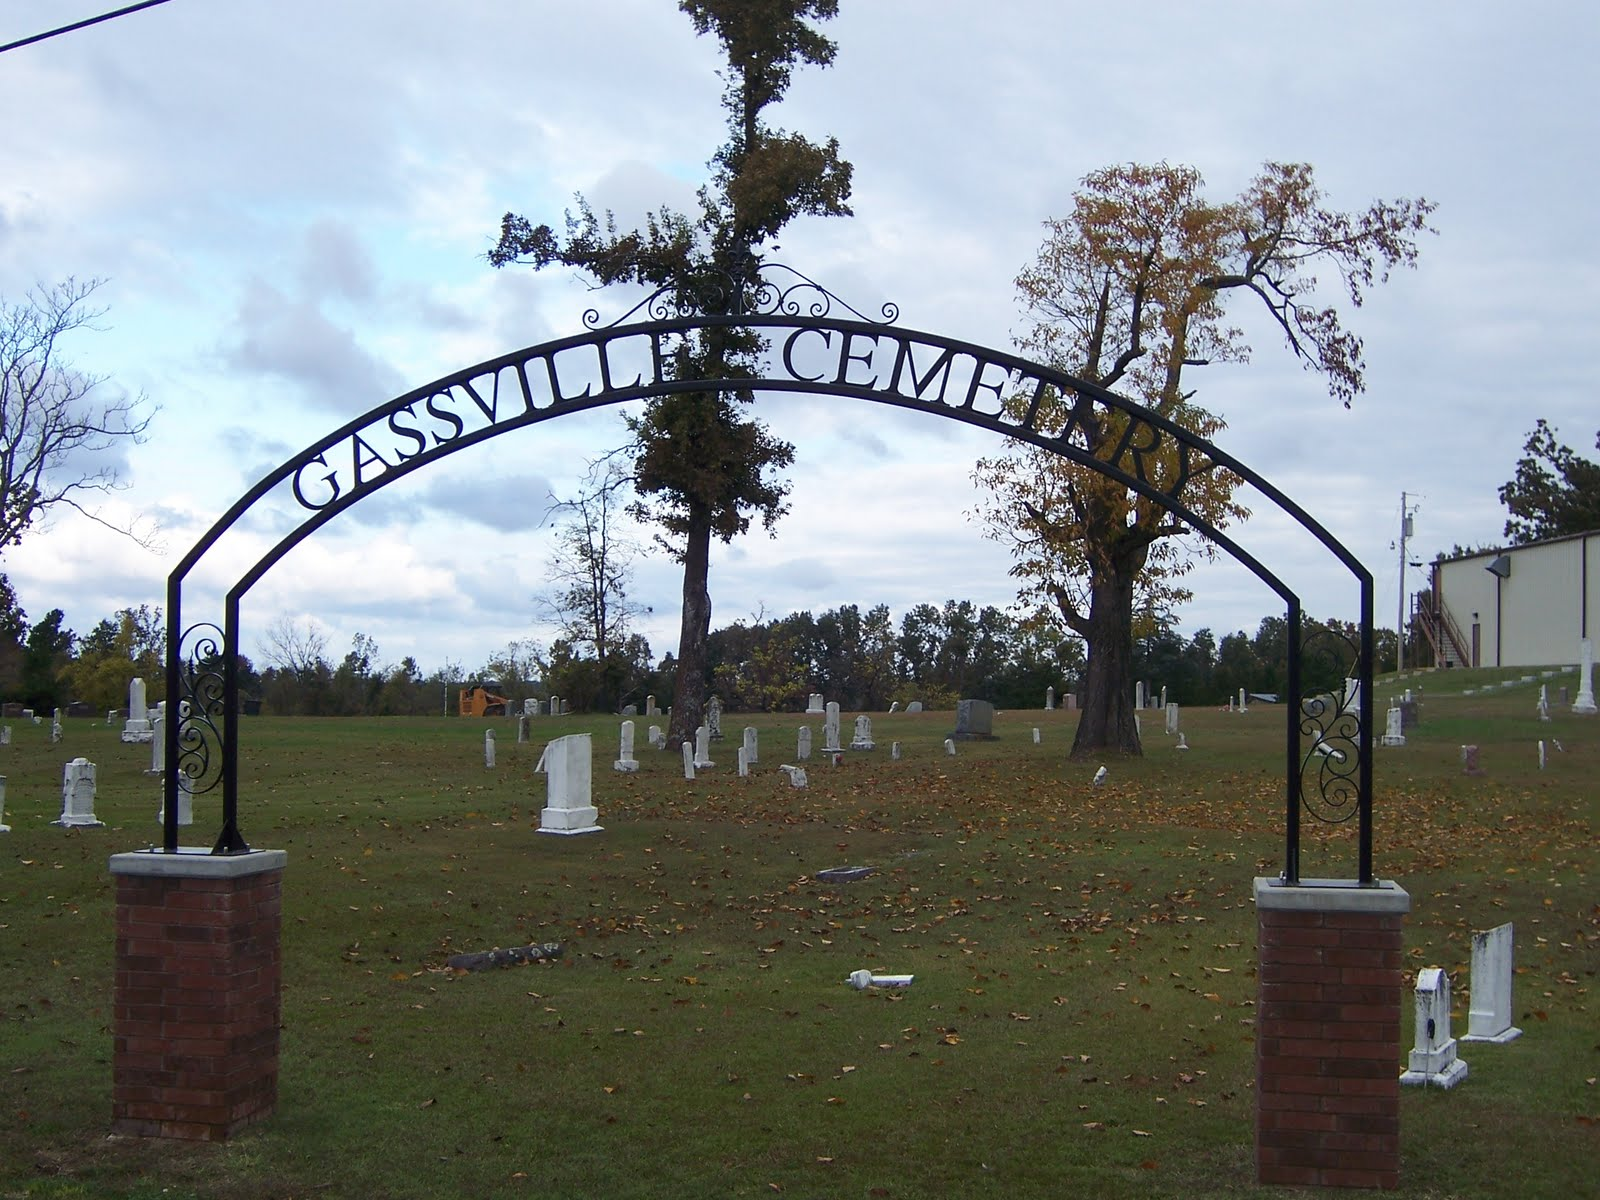 gassville dating Interactive and printable 72635 zip code maps, population demographics, gassville ar real estate costs, rental prices, and home values.